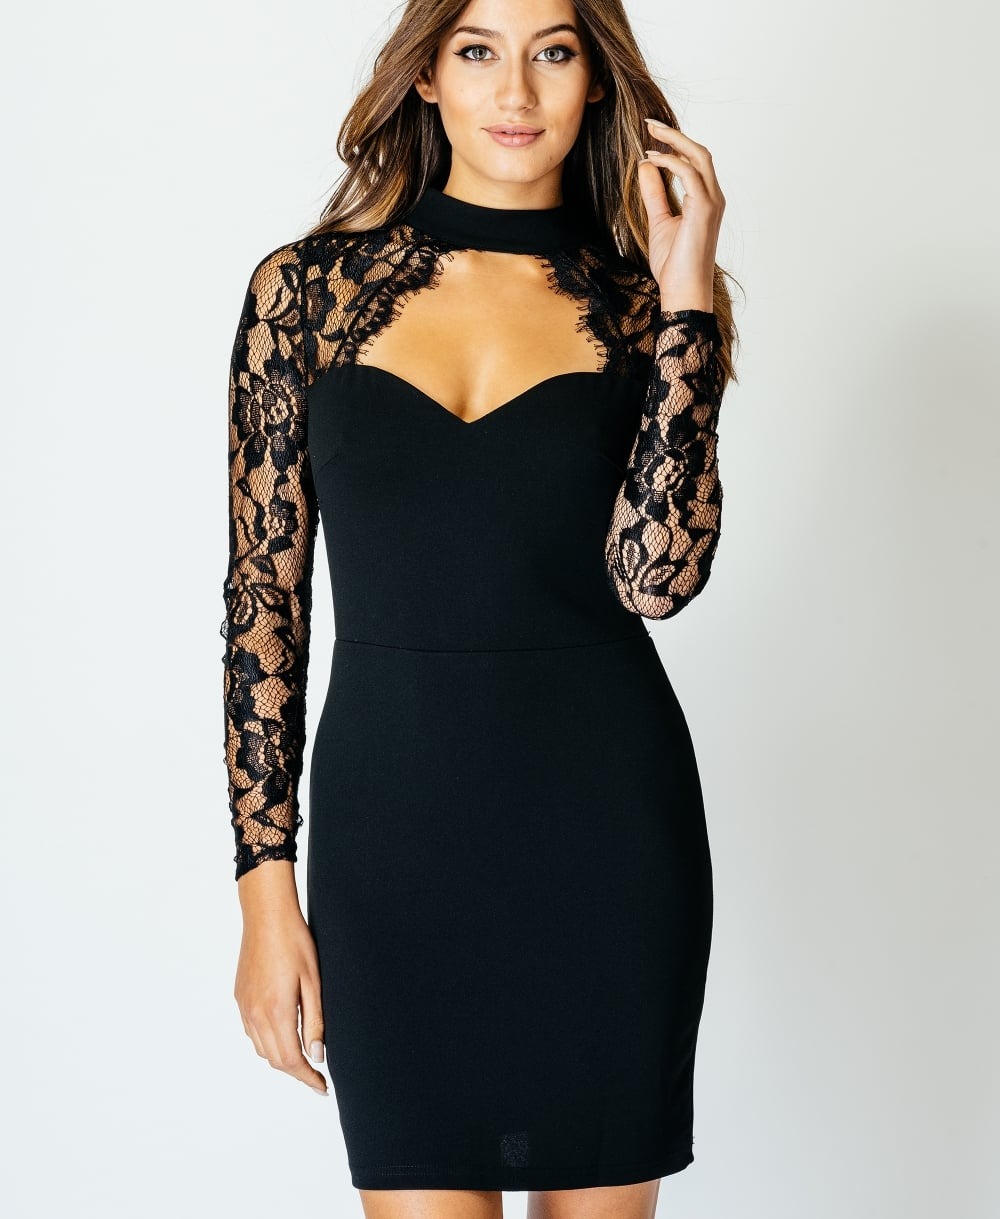 Lace Choker Cut Out Front Bodycon Dress Pretty Panther